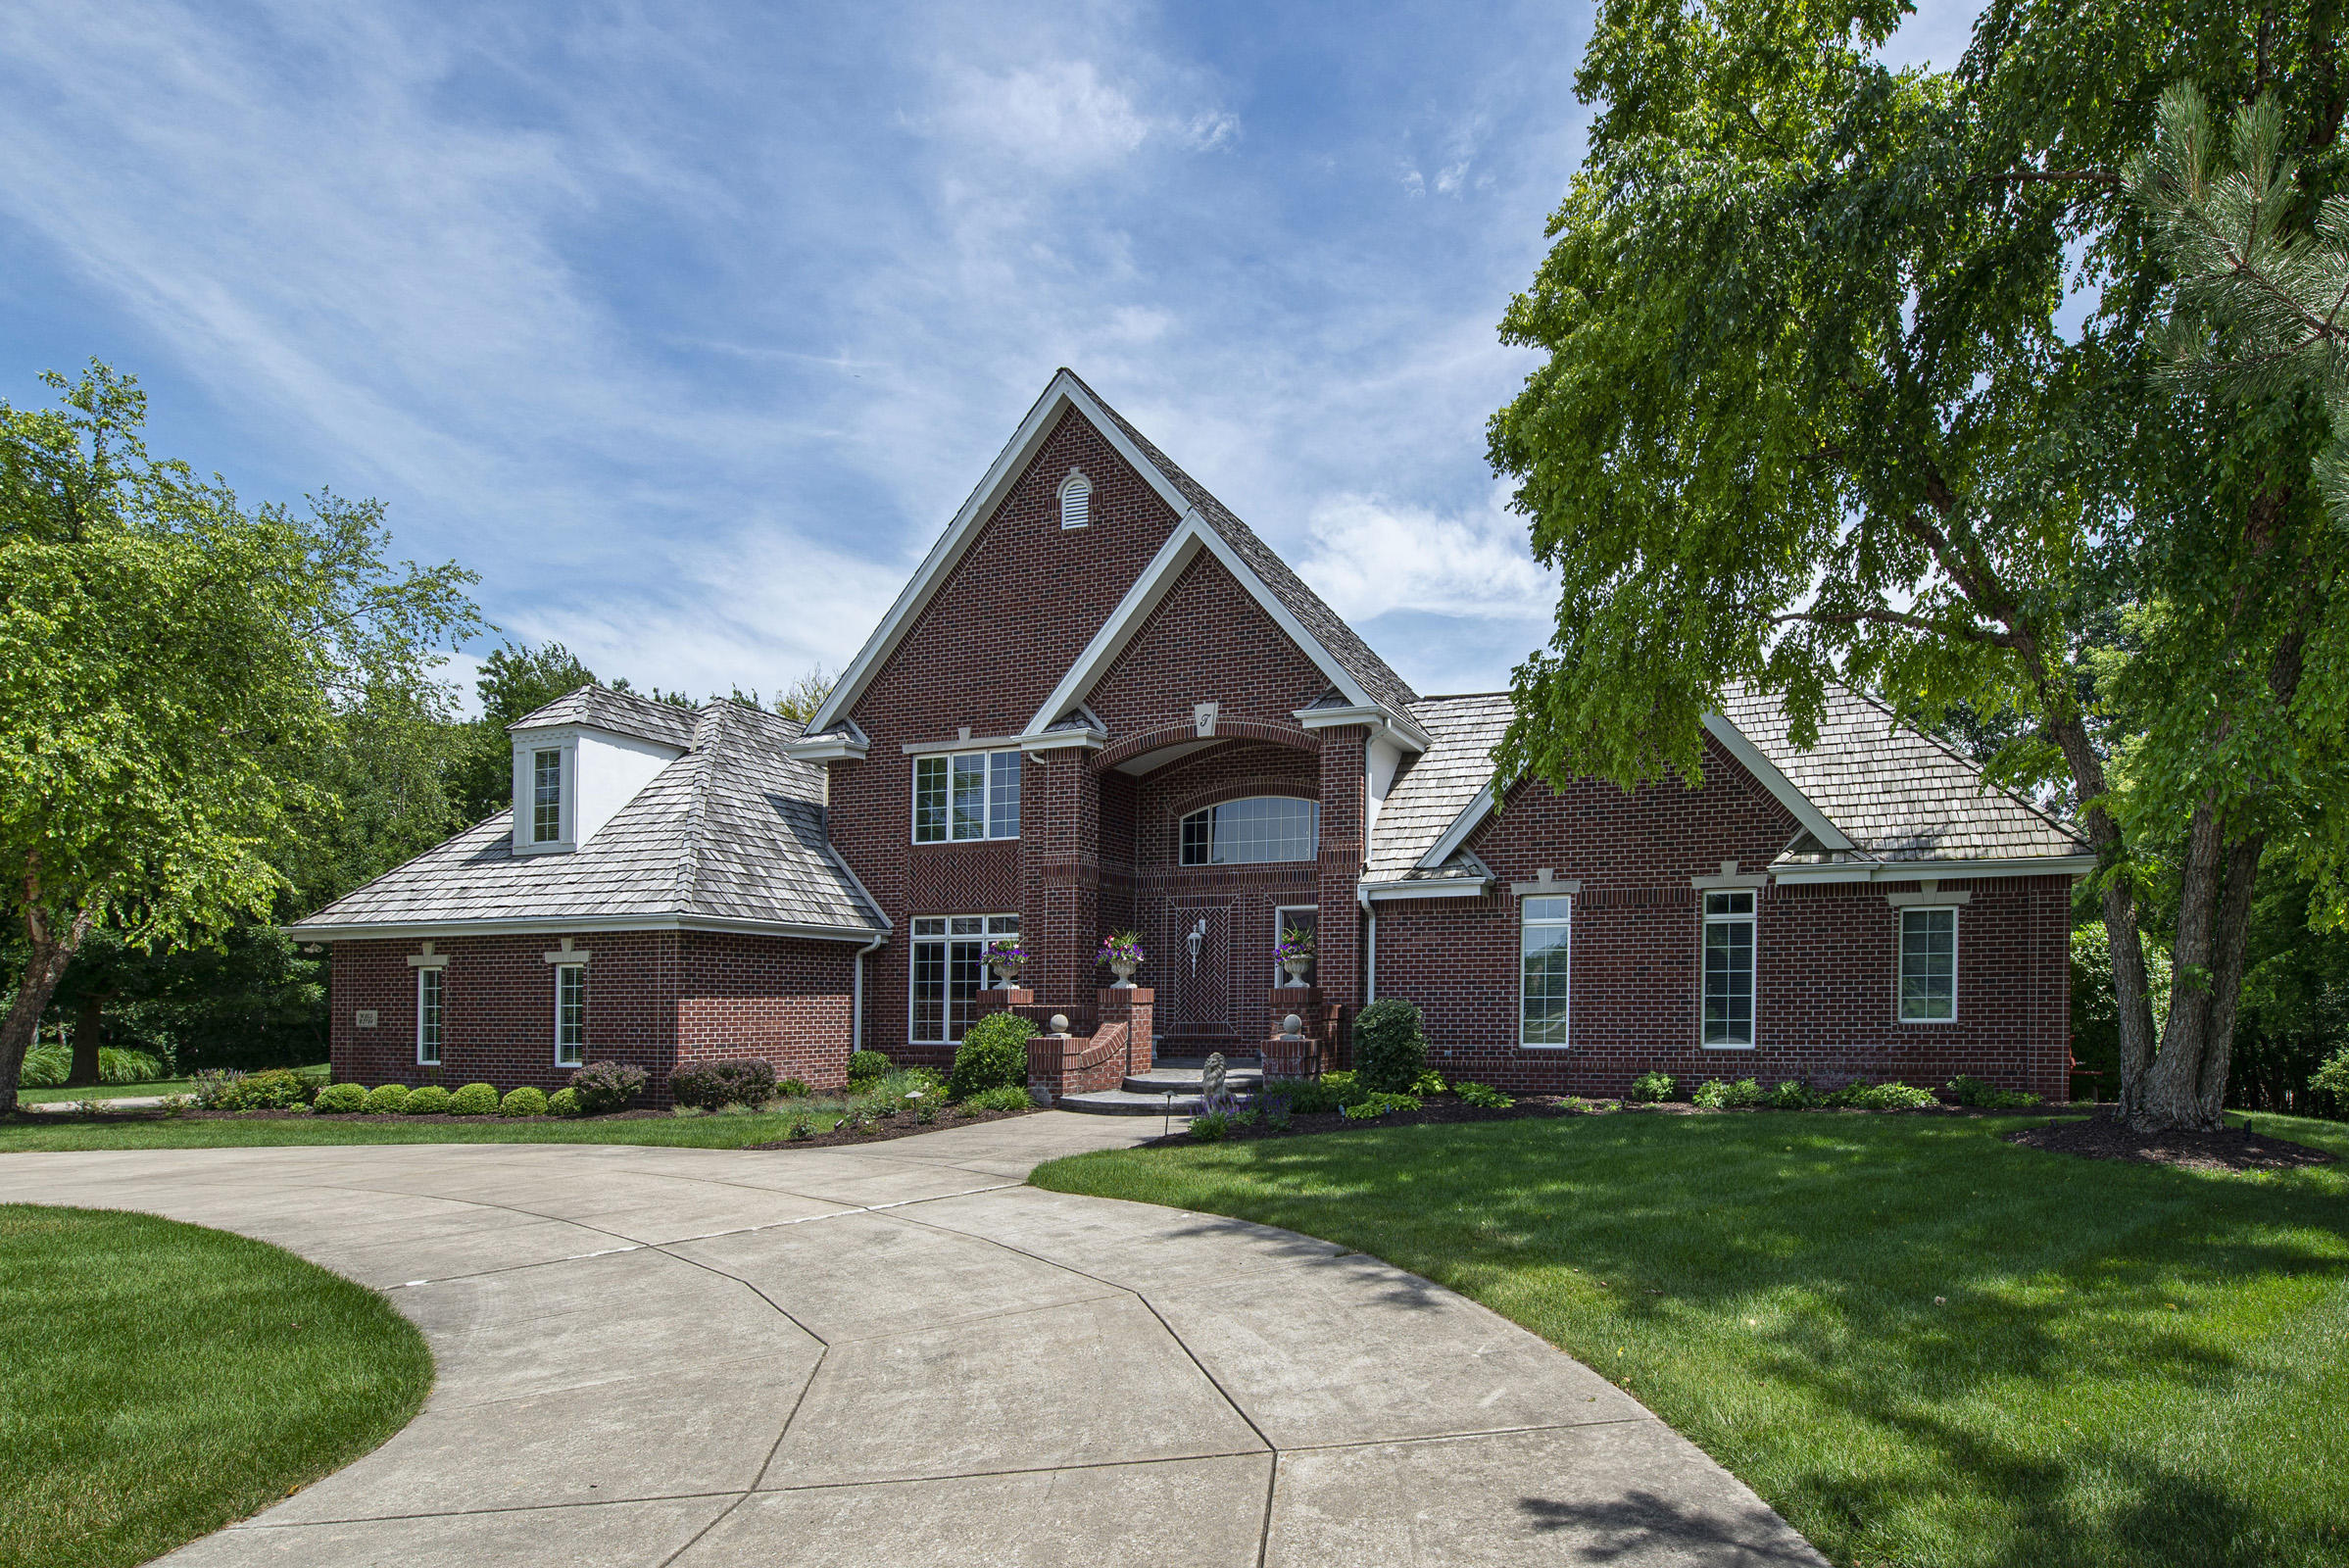 W305N2784 Foxwood Ct, Delafield, Wisconsin 53072, 4 Bedrooms Bedrooms, 10 Rooms Rooms,3 BathroomsBathrooms,Single-Family,For Sale,Foxwood Ct,1699707